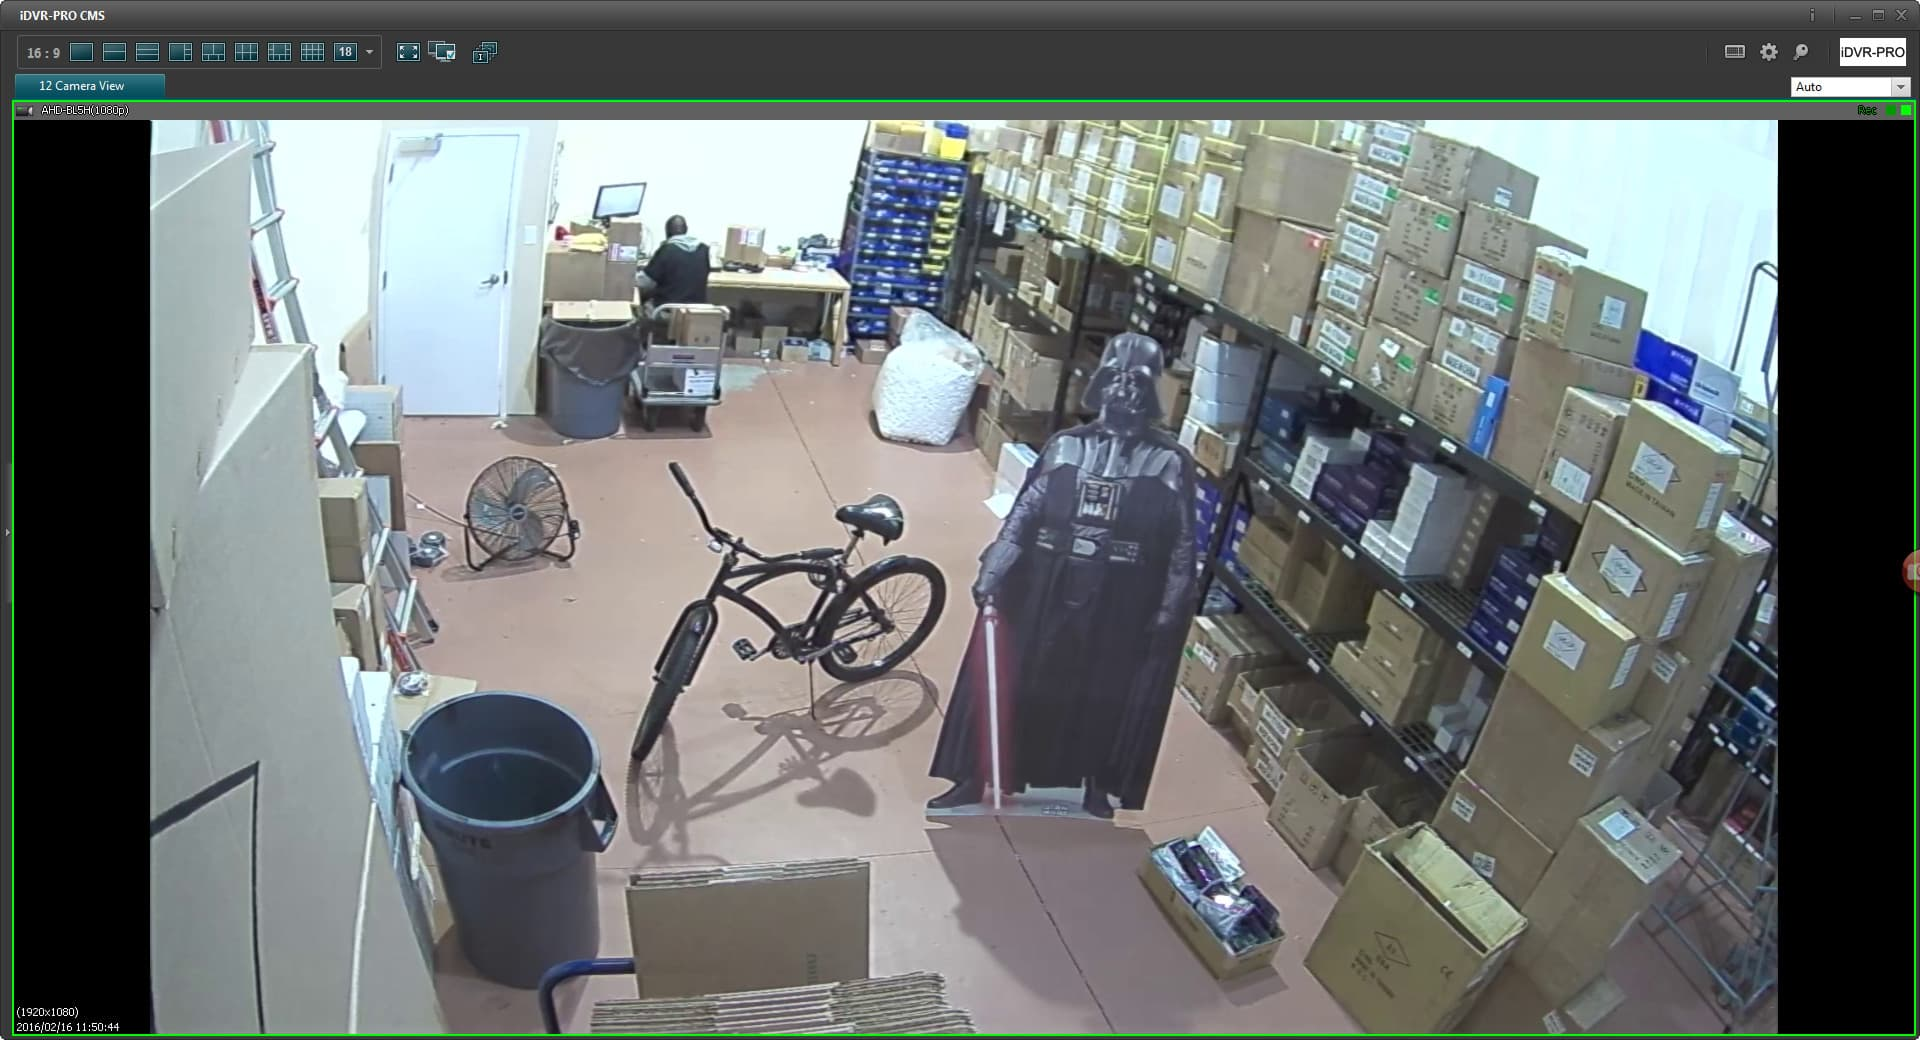 View Security Cameras from Windows Surveillance Software